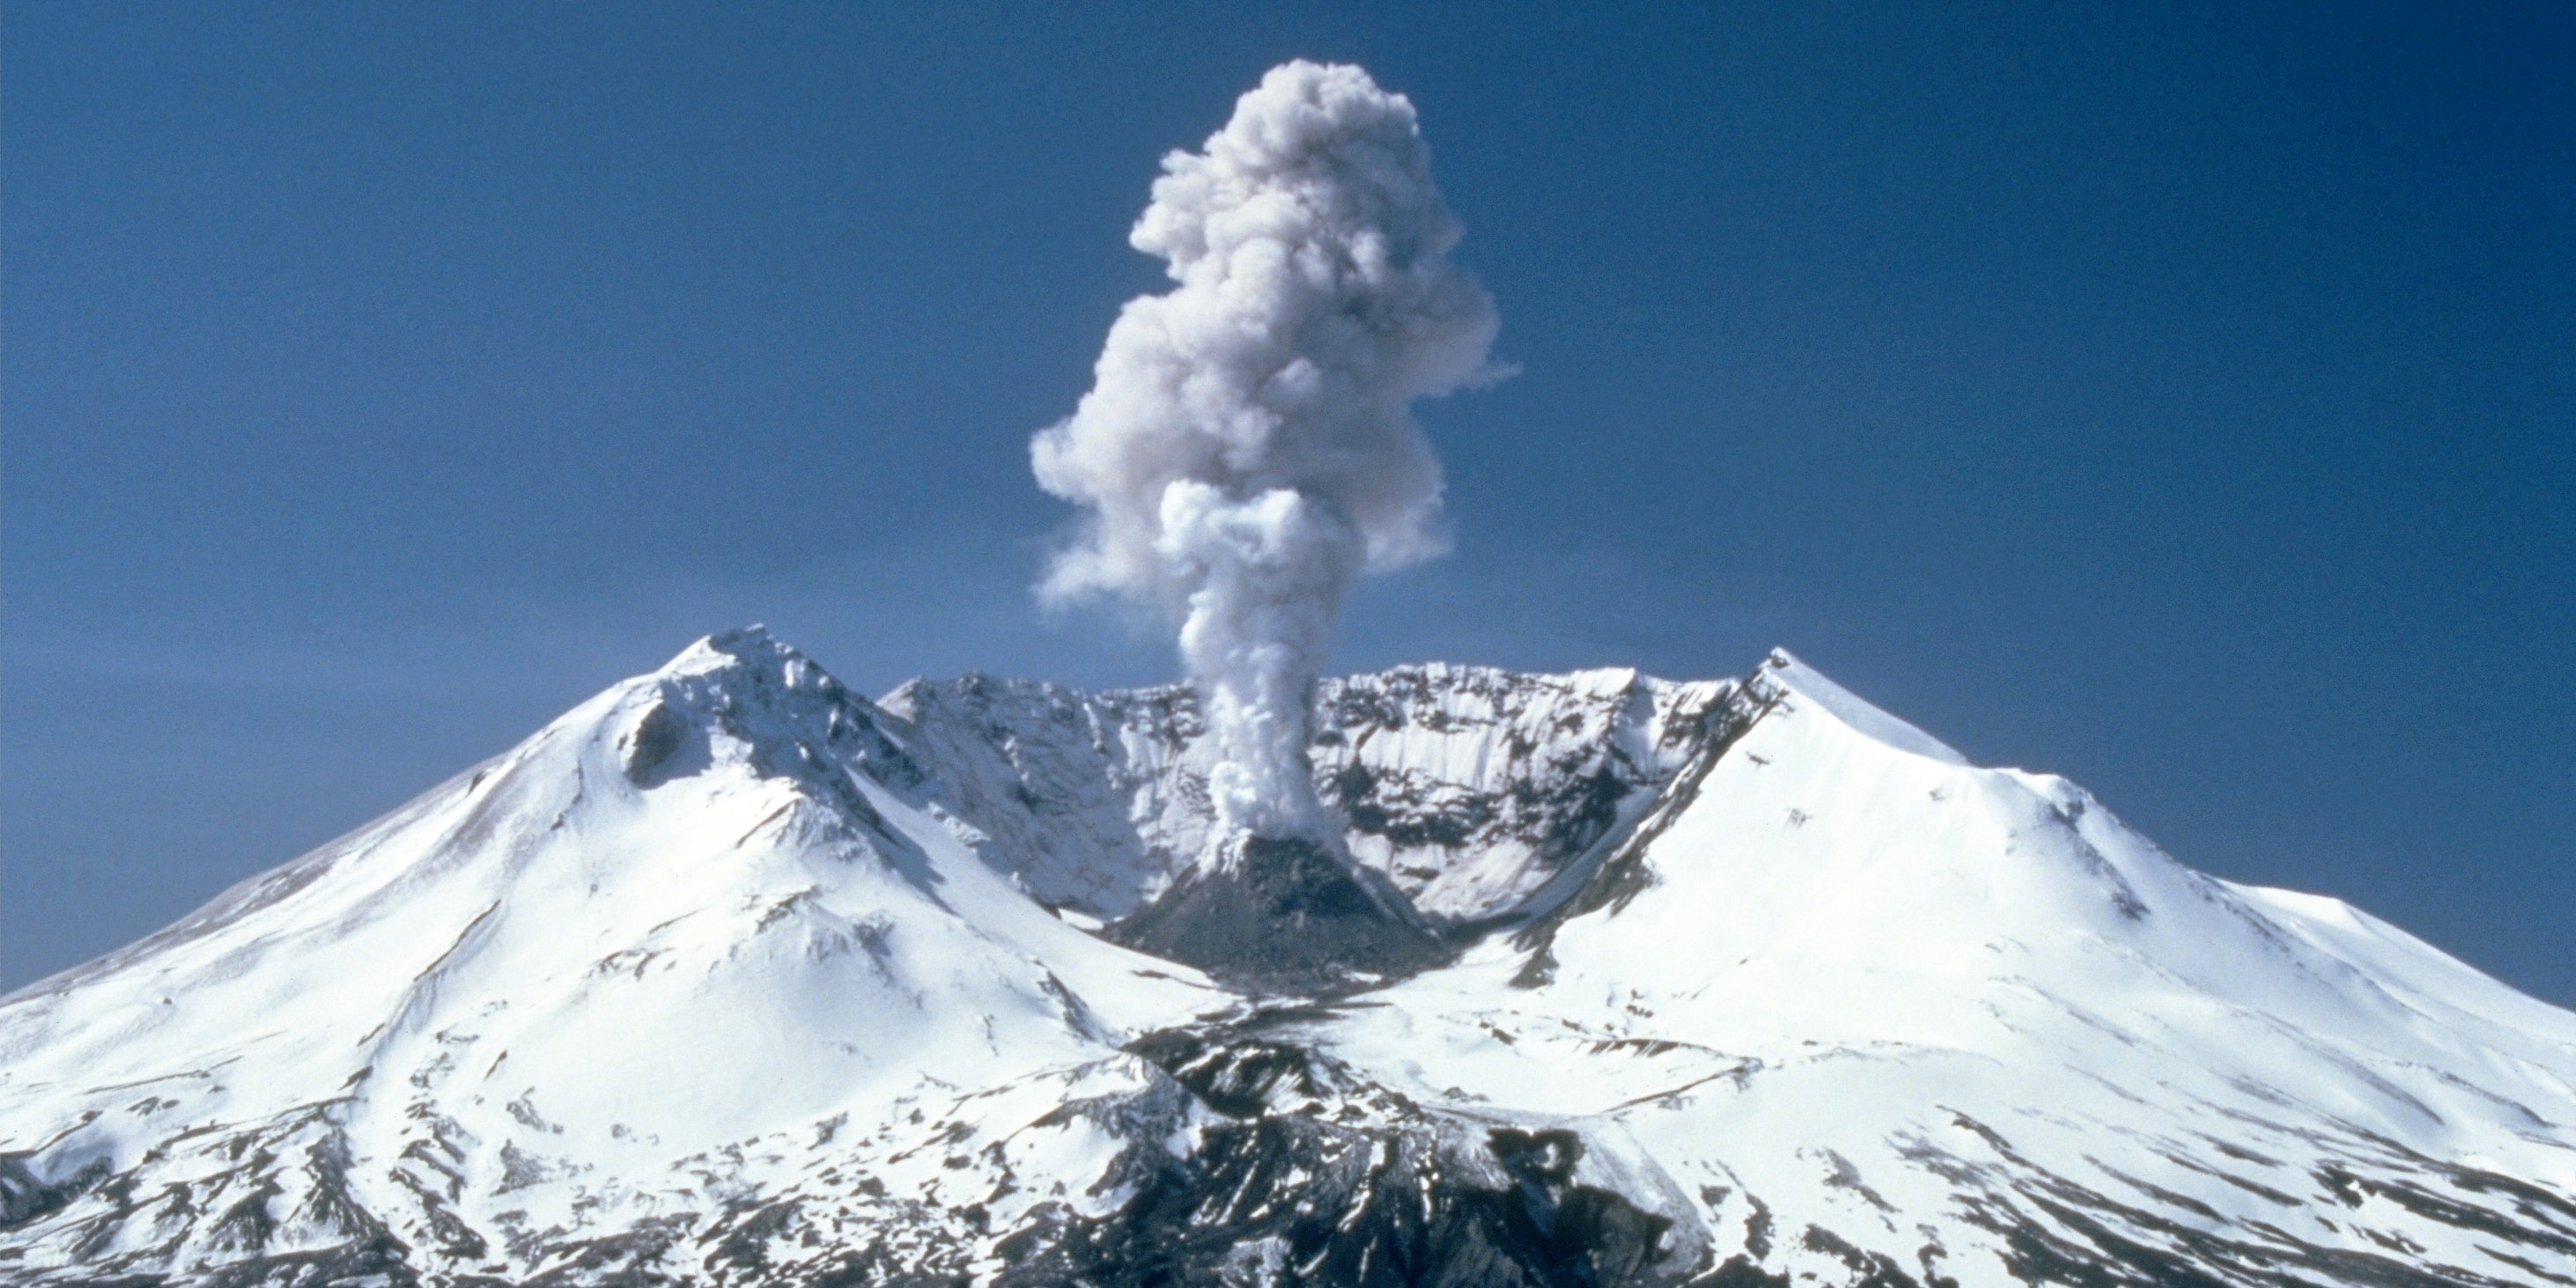 Plumes of steam, gas, and ash often occurred at Mount St. Helens in the early 1980s. On clear days they could be seen from Portland, Oregon, 50 mi (80 km) to the south. The plume photographed here rose nearly 3,000 ft (910 m) above the volcano's rim. The view is from Harrys Ridge, 5 mi (8 km) north of the mountain.